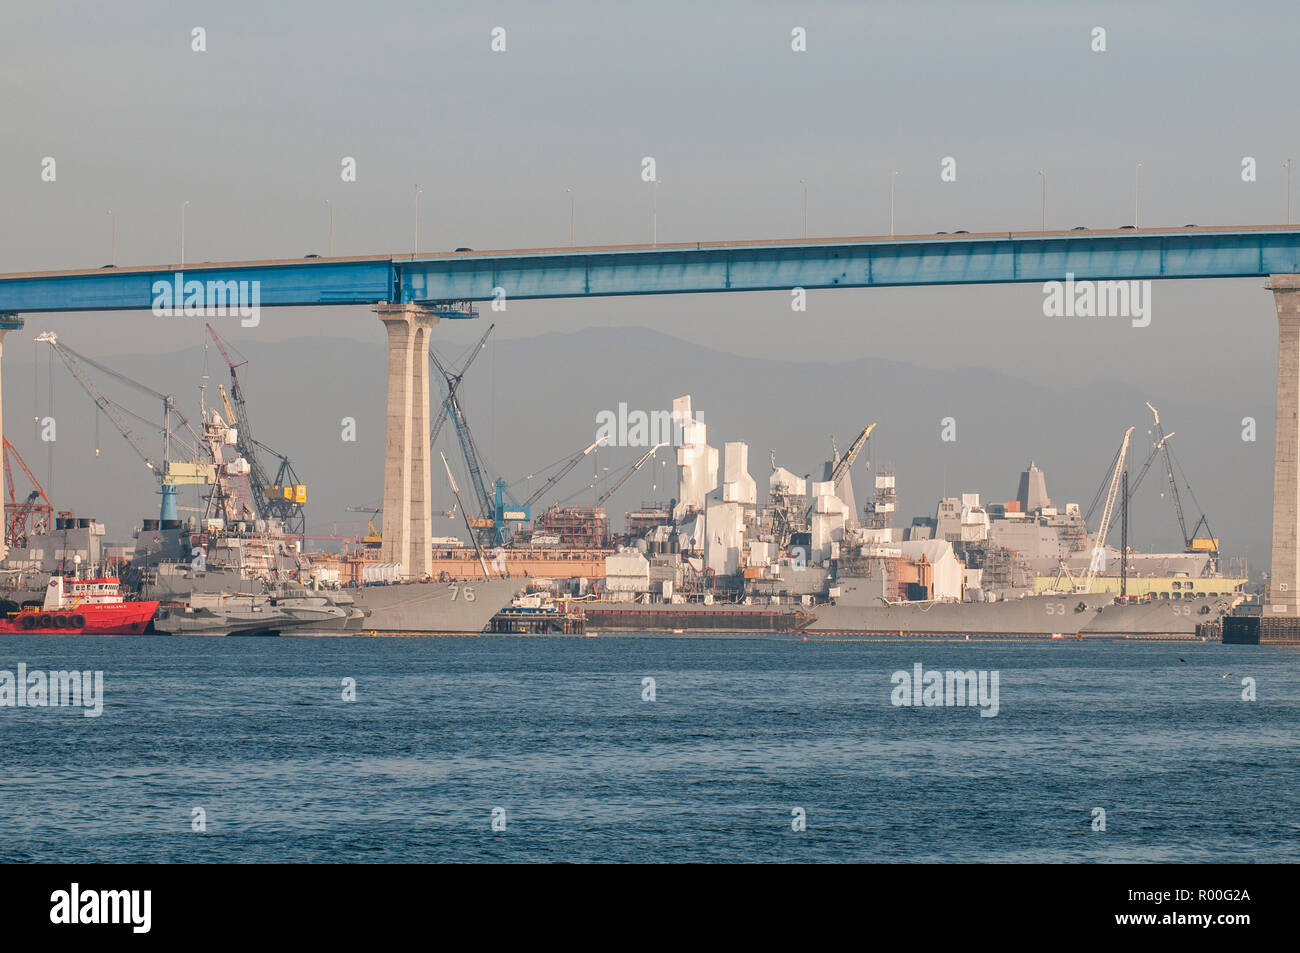 USS Higgins (76) and other destroyers getting refit in Naval dockyards, San Diego Harbor, San Diego, California. - Stock Image